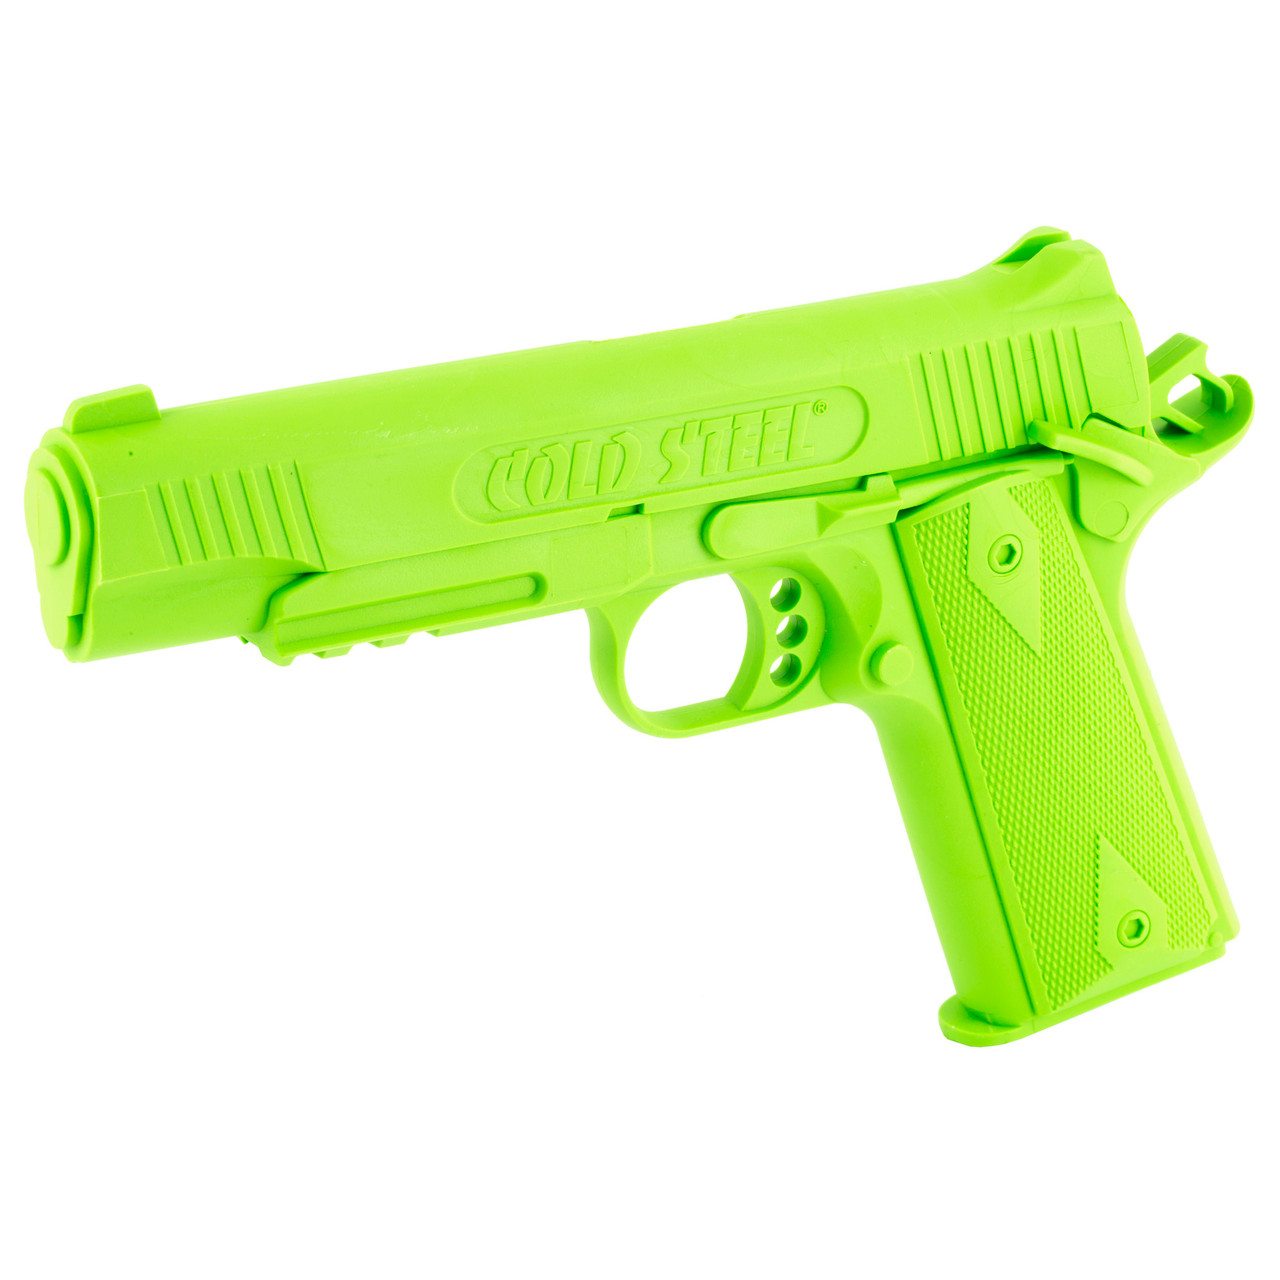 Cold Steel Green Ruger LCR Rubber Trainer 92RGRLZ